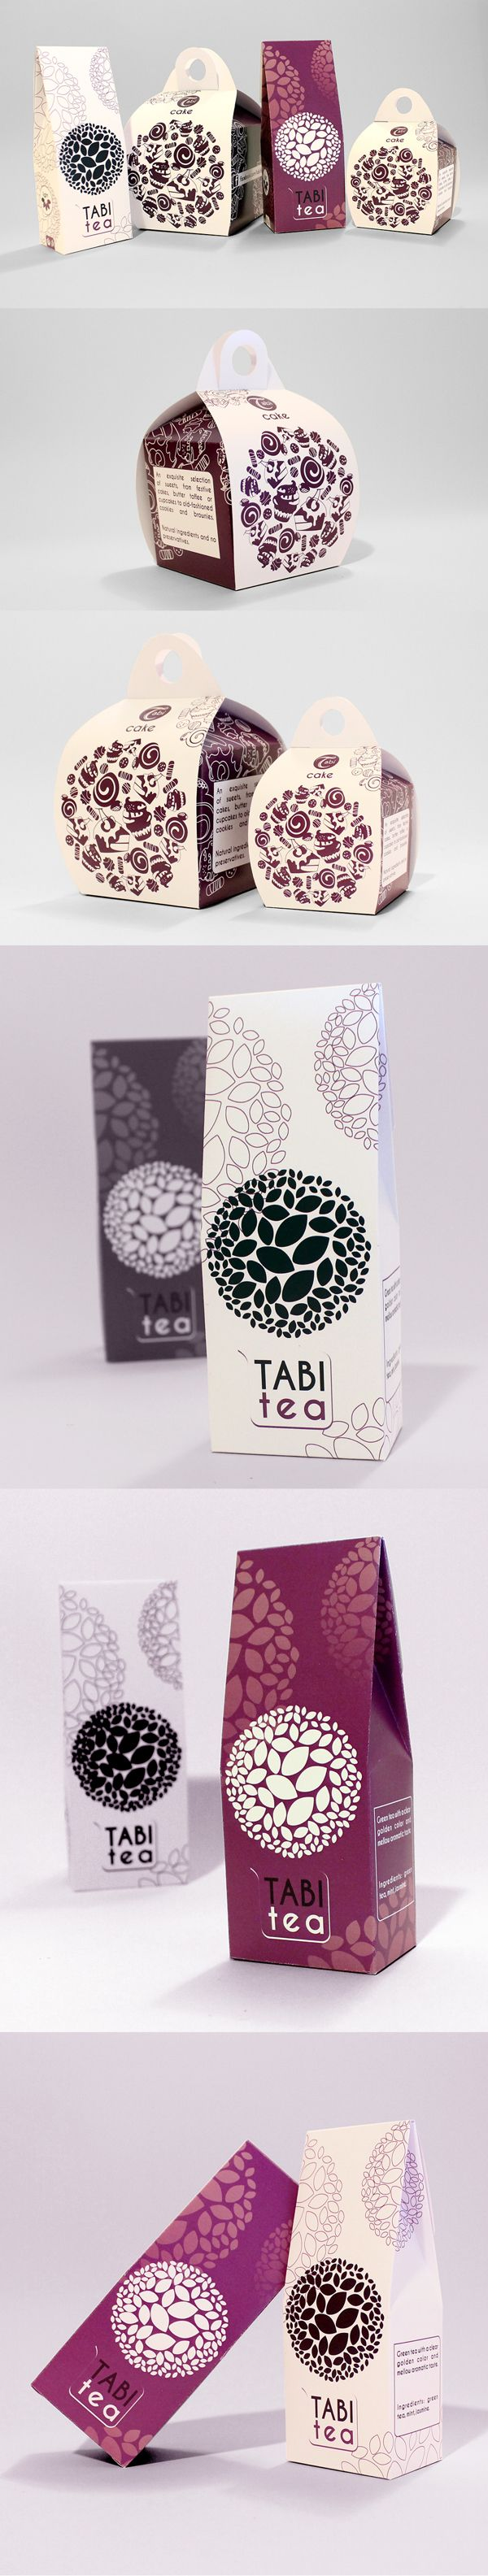 Tabi Cafe by CULT CAT, via Behance. I love this #tea and #cake #packaging PD